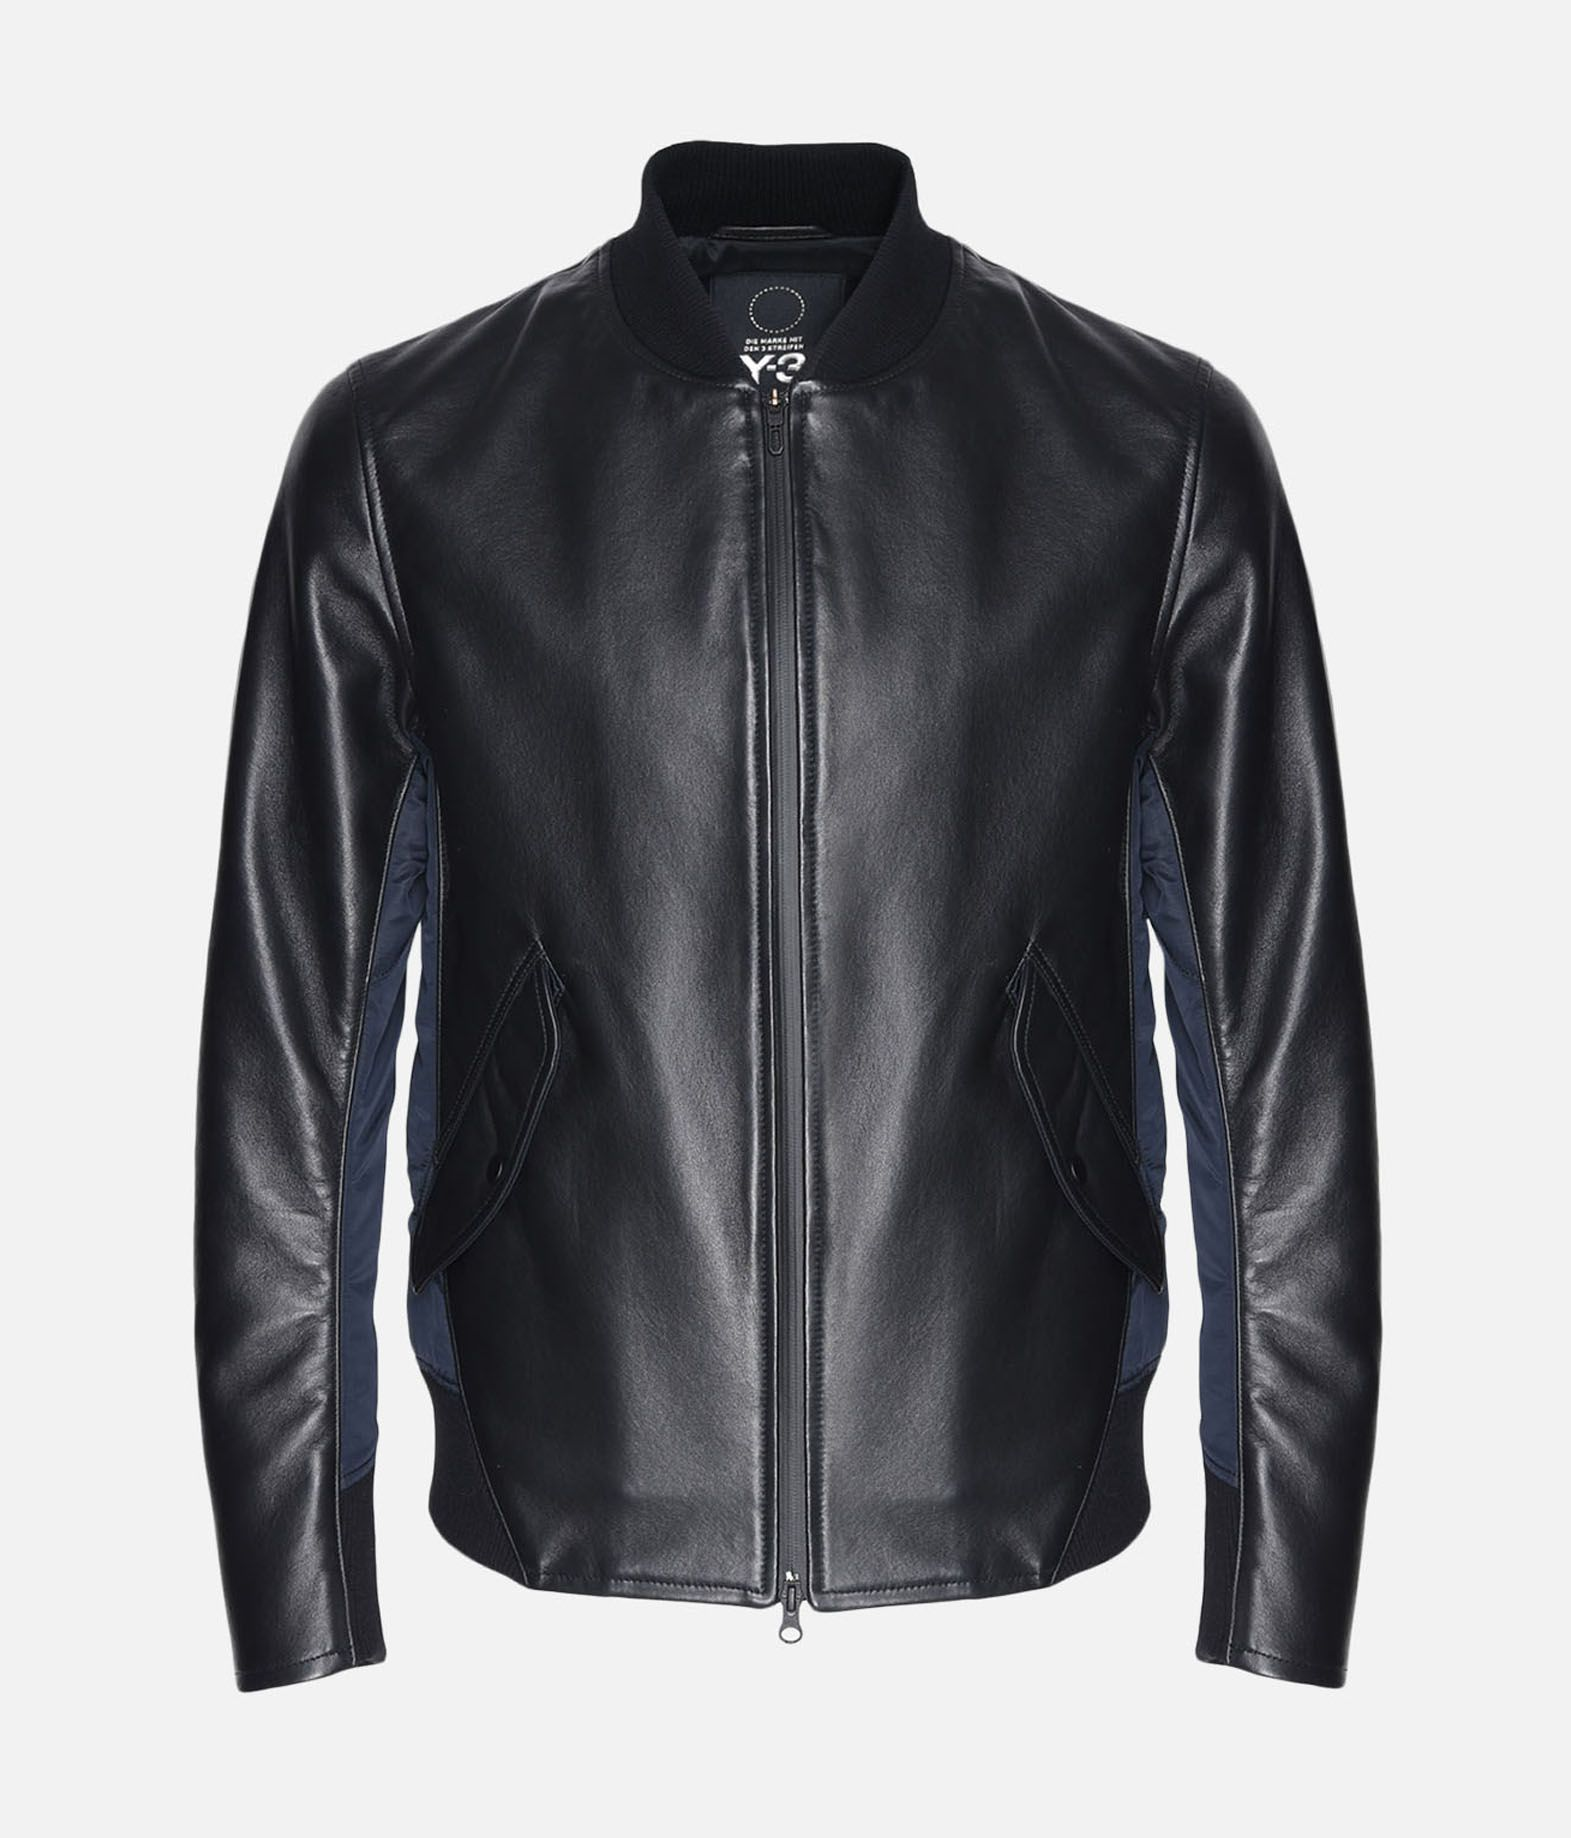 c2a6684ba239 ... Y-3 Y-3 Bonded Leather Jacket Leather jacket Man f ...